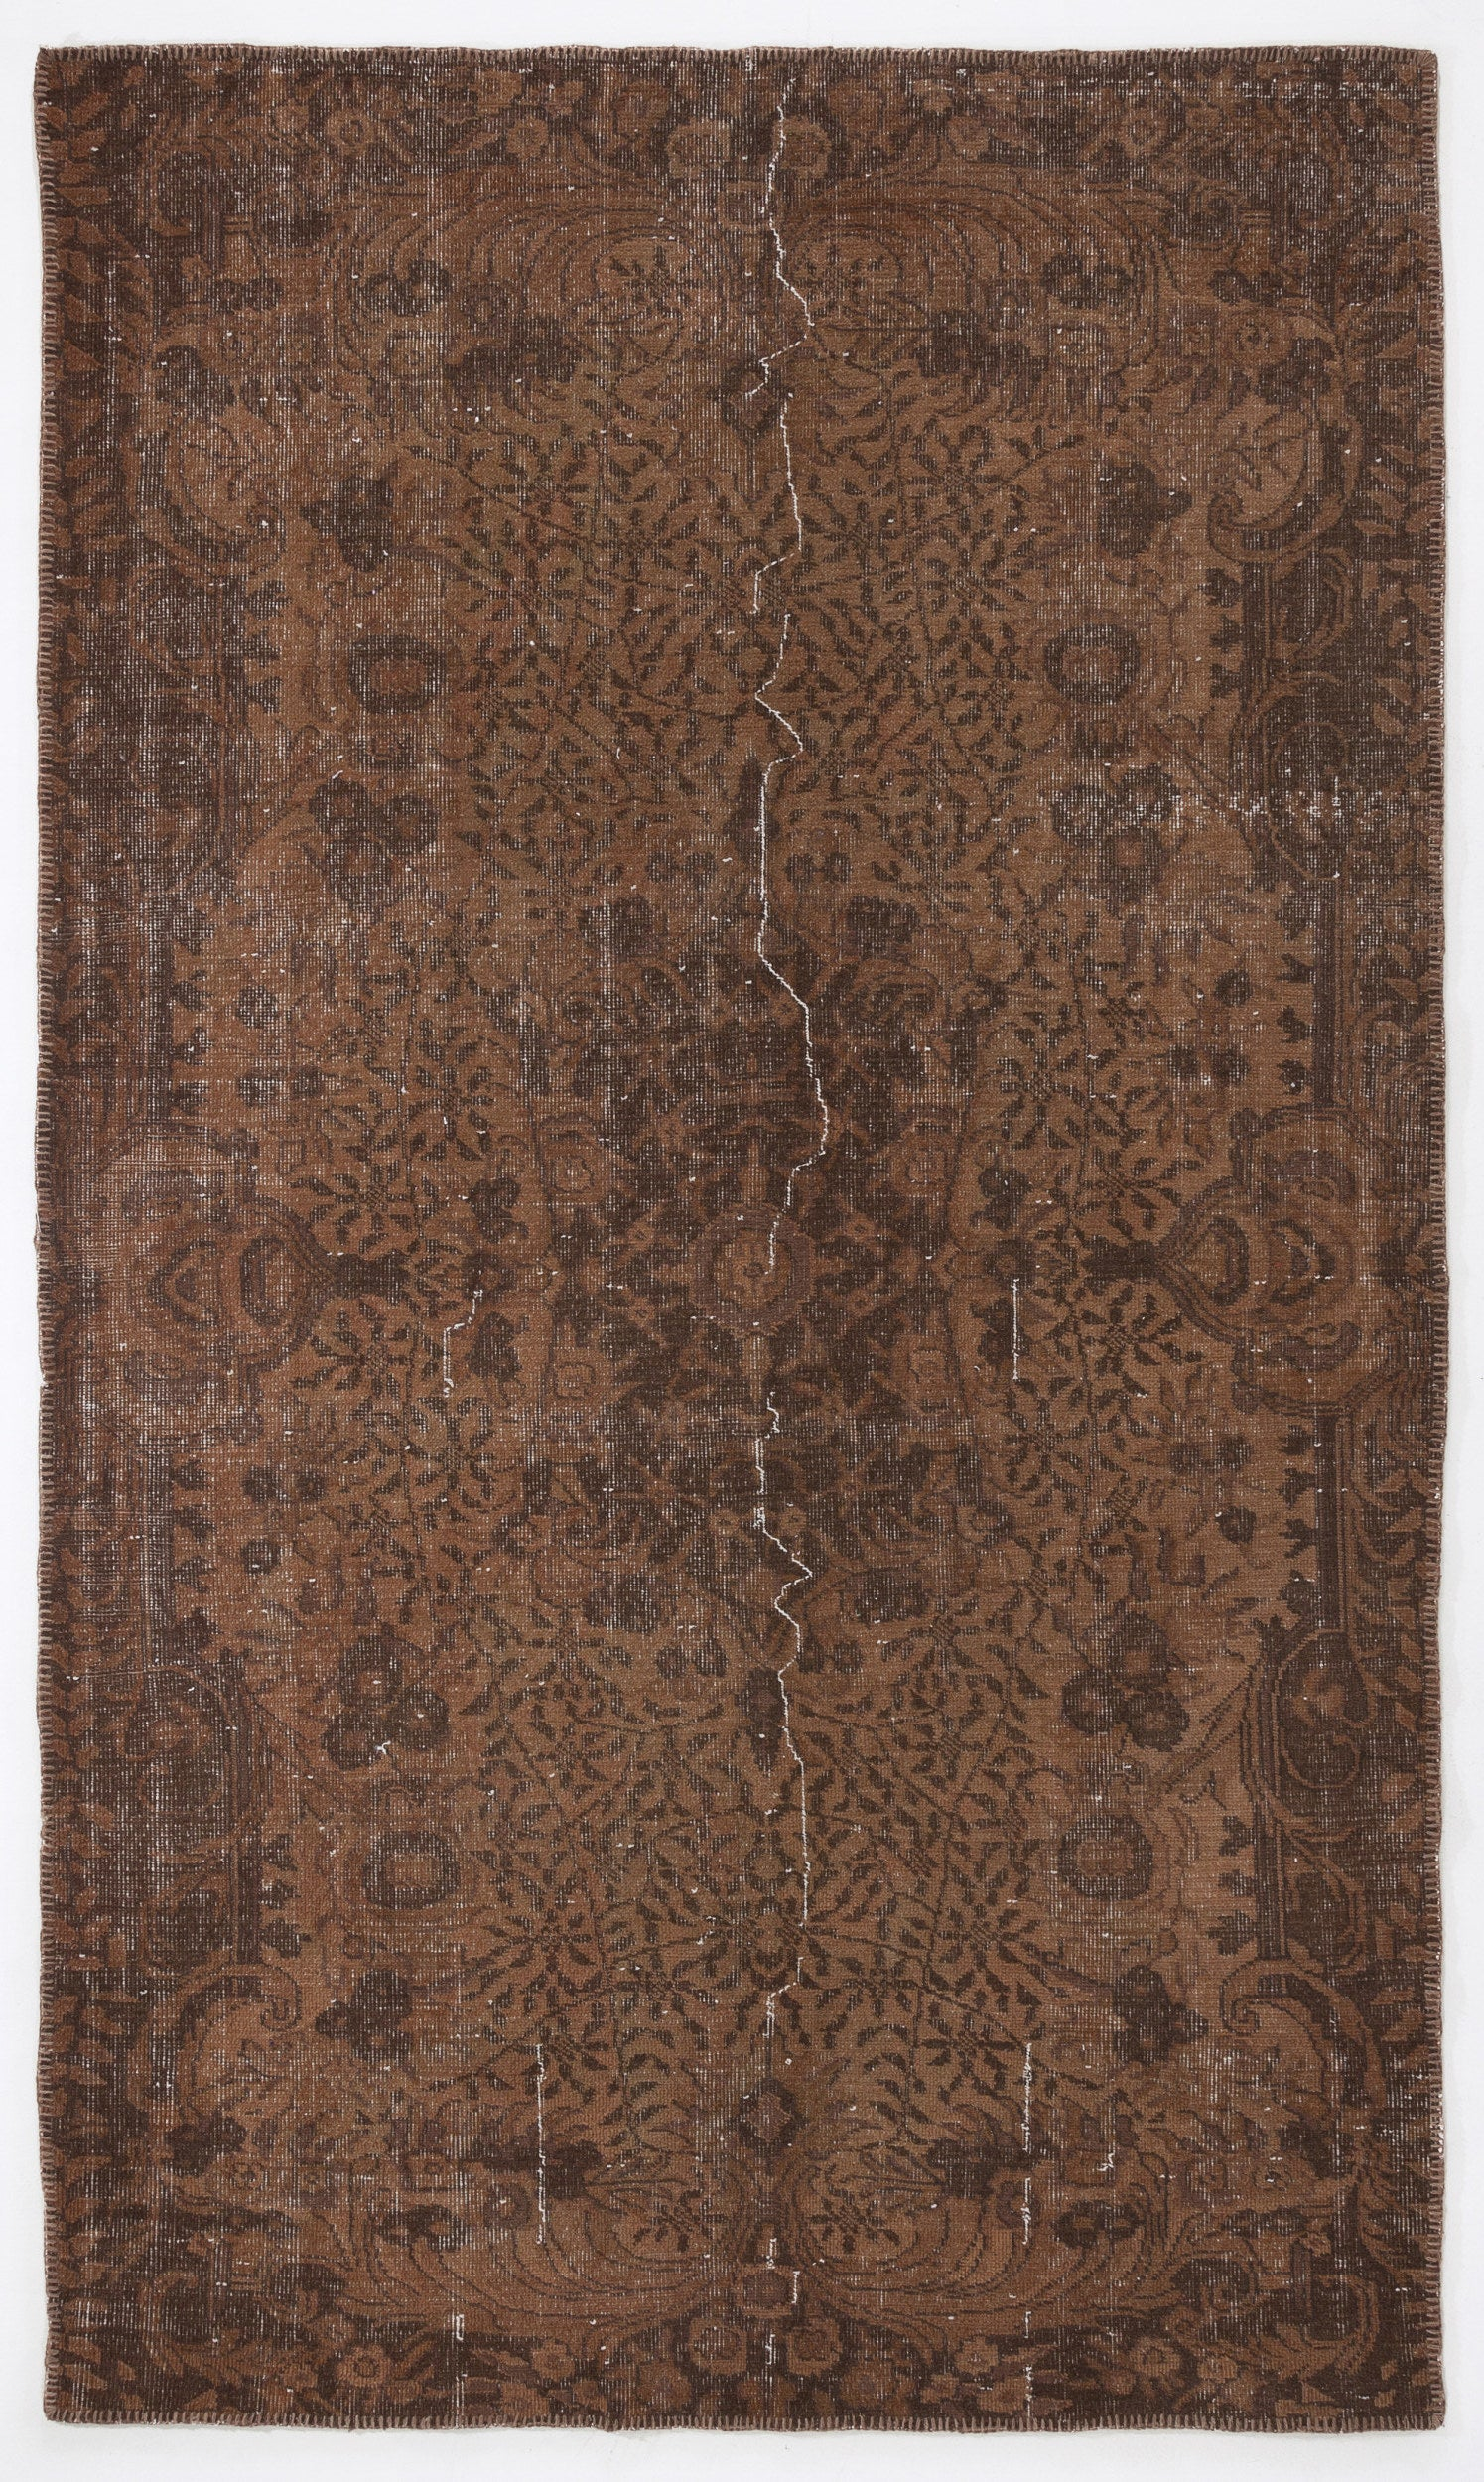 Brown Over Dyed Vintage Rug 5'4'' x 8'12'' ft 163 x 274 cm